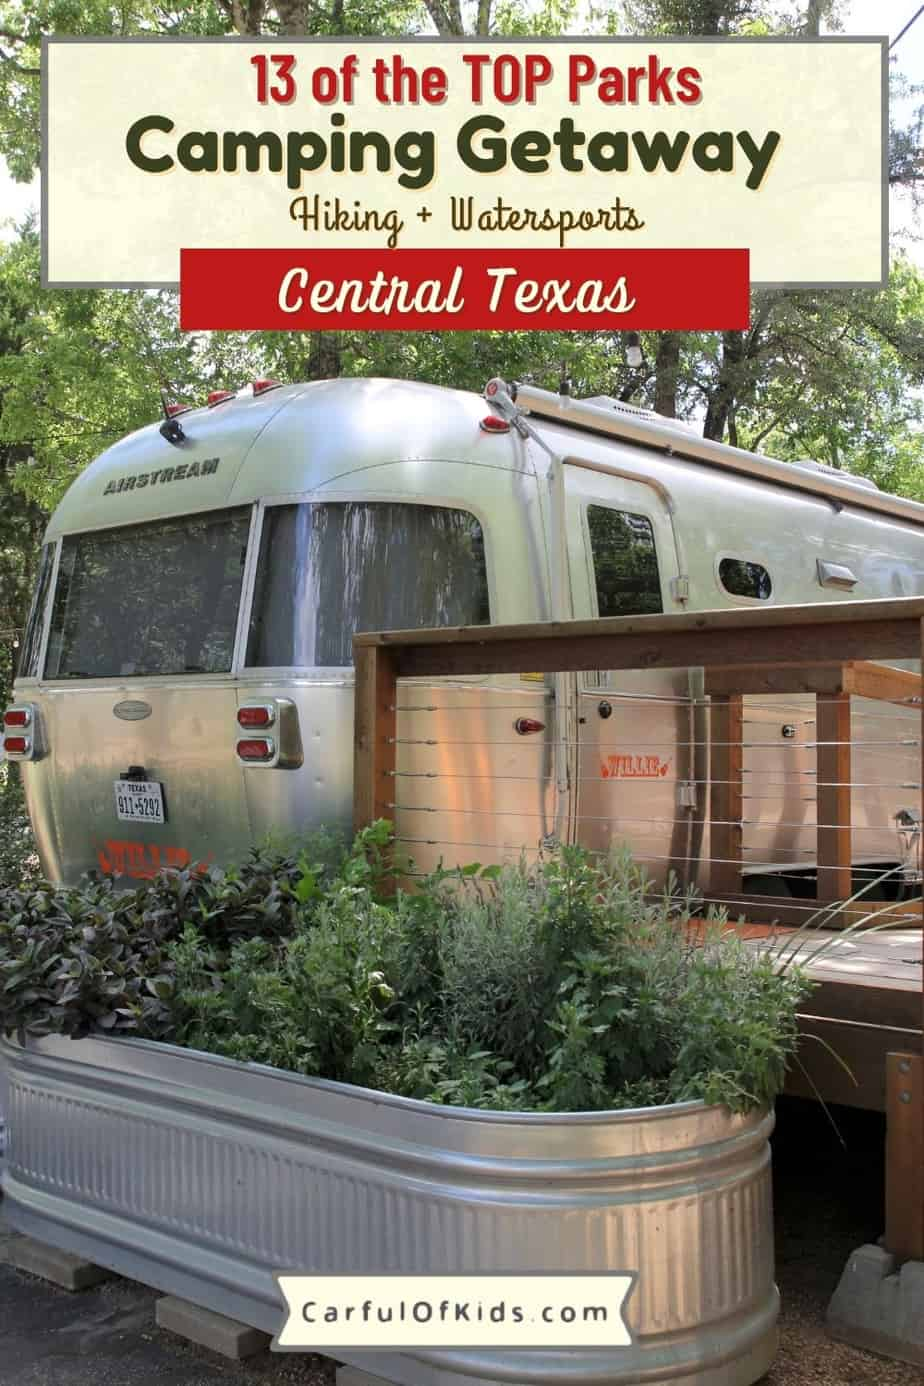 Pack up for a weekend in the woods around Central Texas. Here's 13 top parks for a camping trip or day trip. With lakes galore, you can boat, paddleboat or canoe. Find campsites, cabins and even Airstreams to rent. Heres the best Texas State Parks, LCRA parks and regional parks around Austin and in the Hill Country. Where to camp near Austin | Best State Parks in the Texas Hill Country | Cabin in the Hill Country | Airstreams in Texas to rent #camping #TexasParks